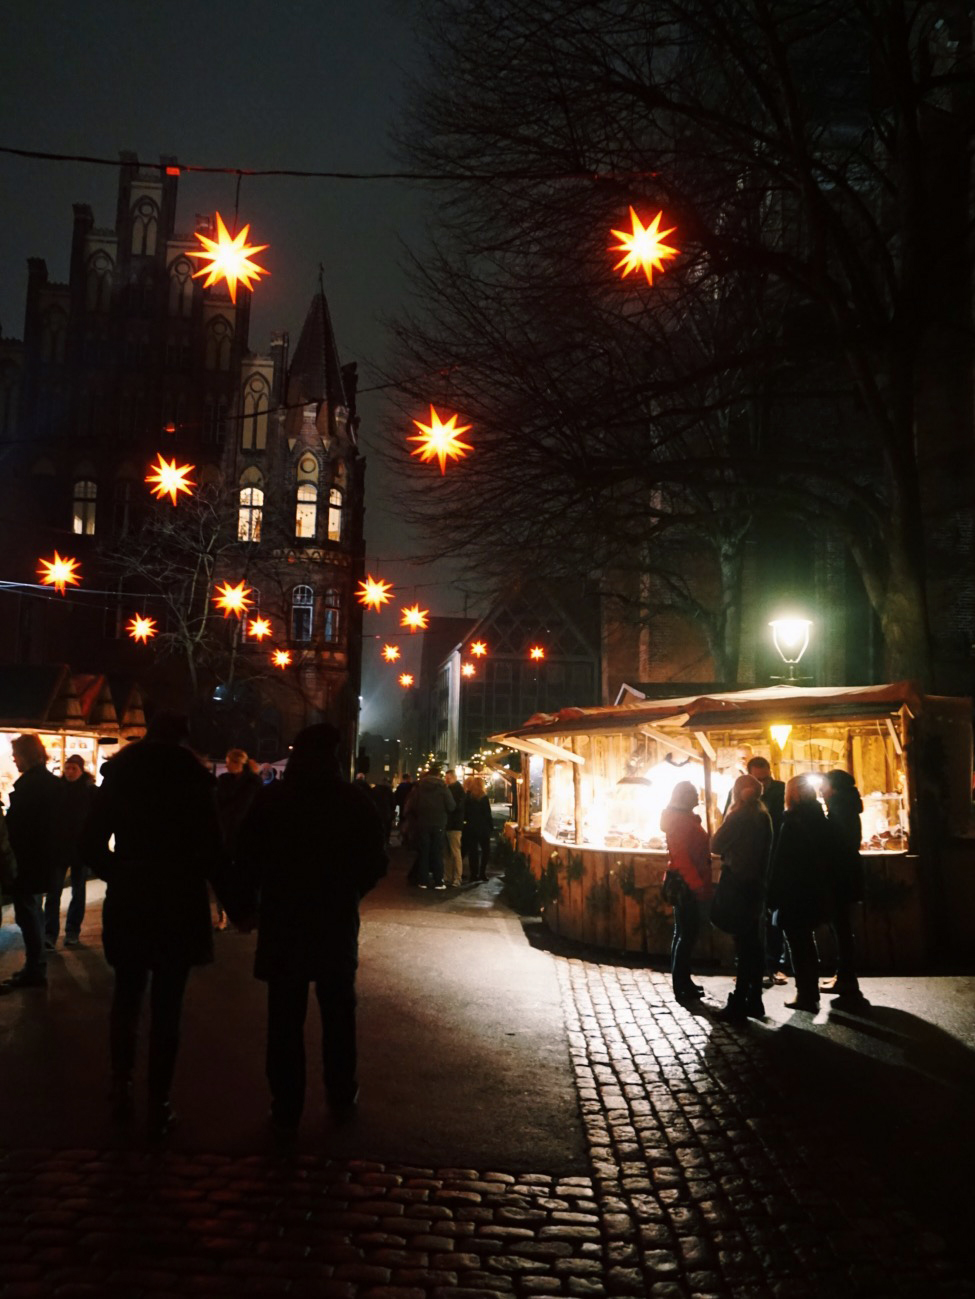 The Christmas market in Lübeck, Germany, December